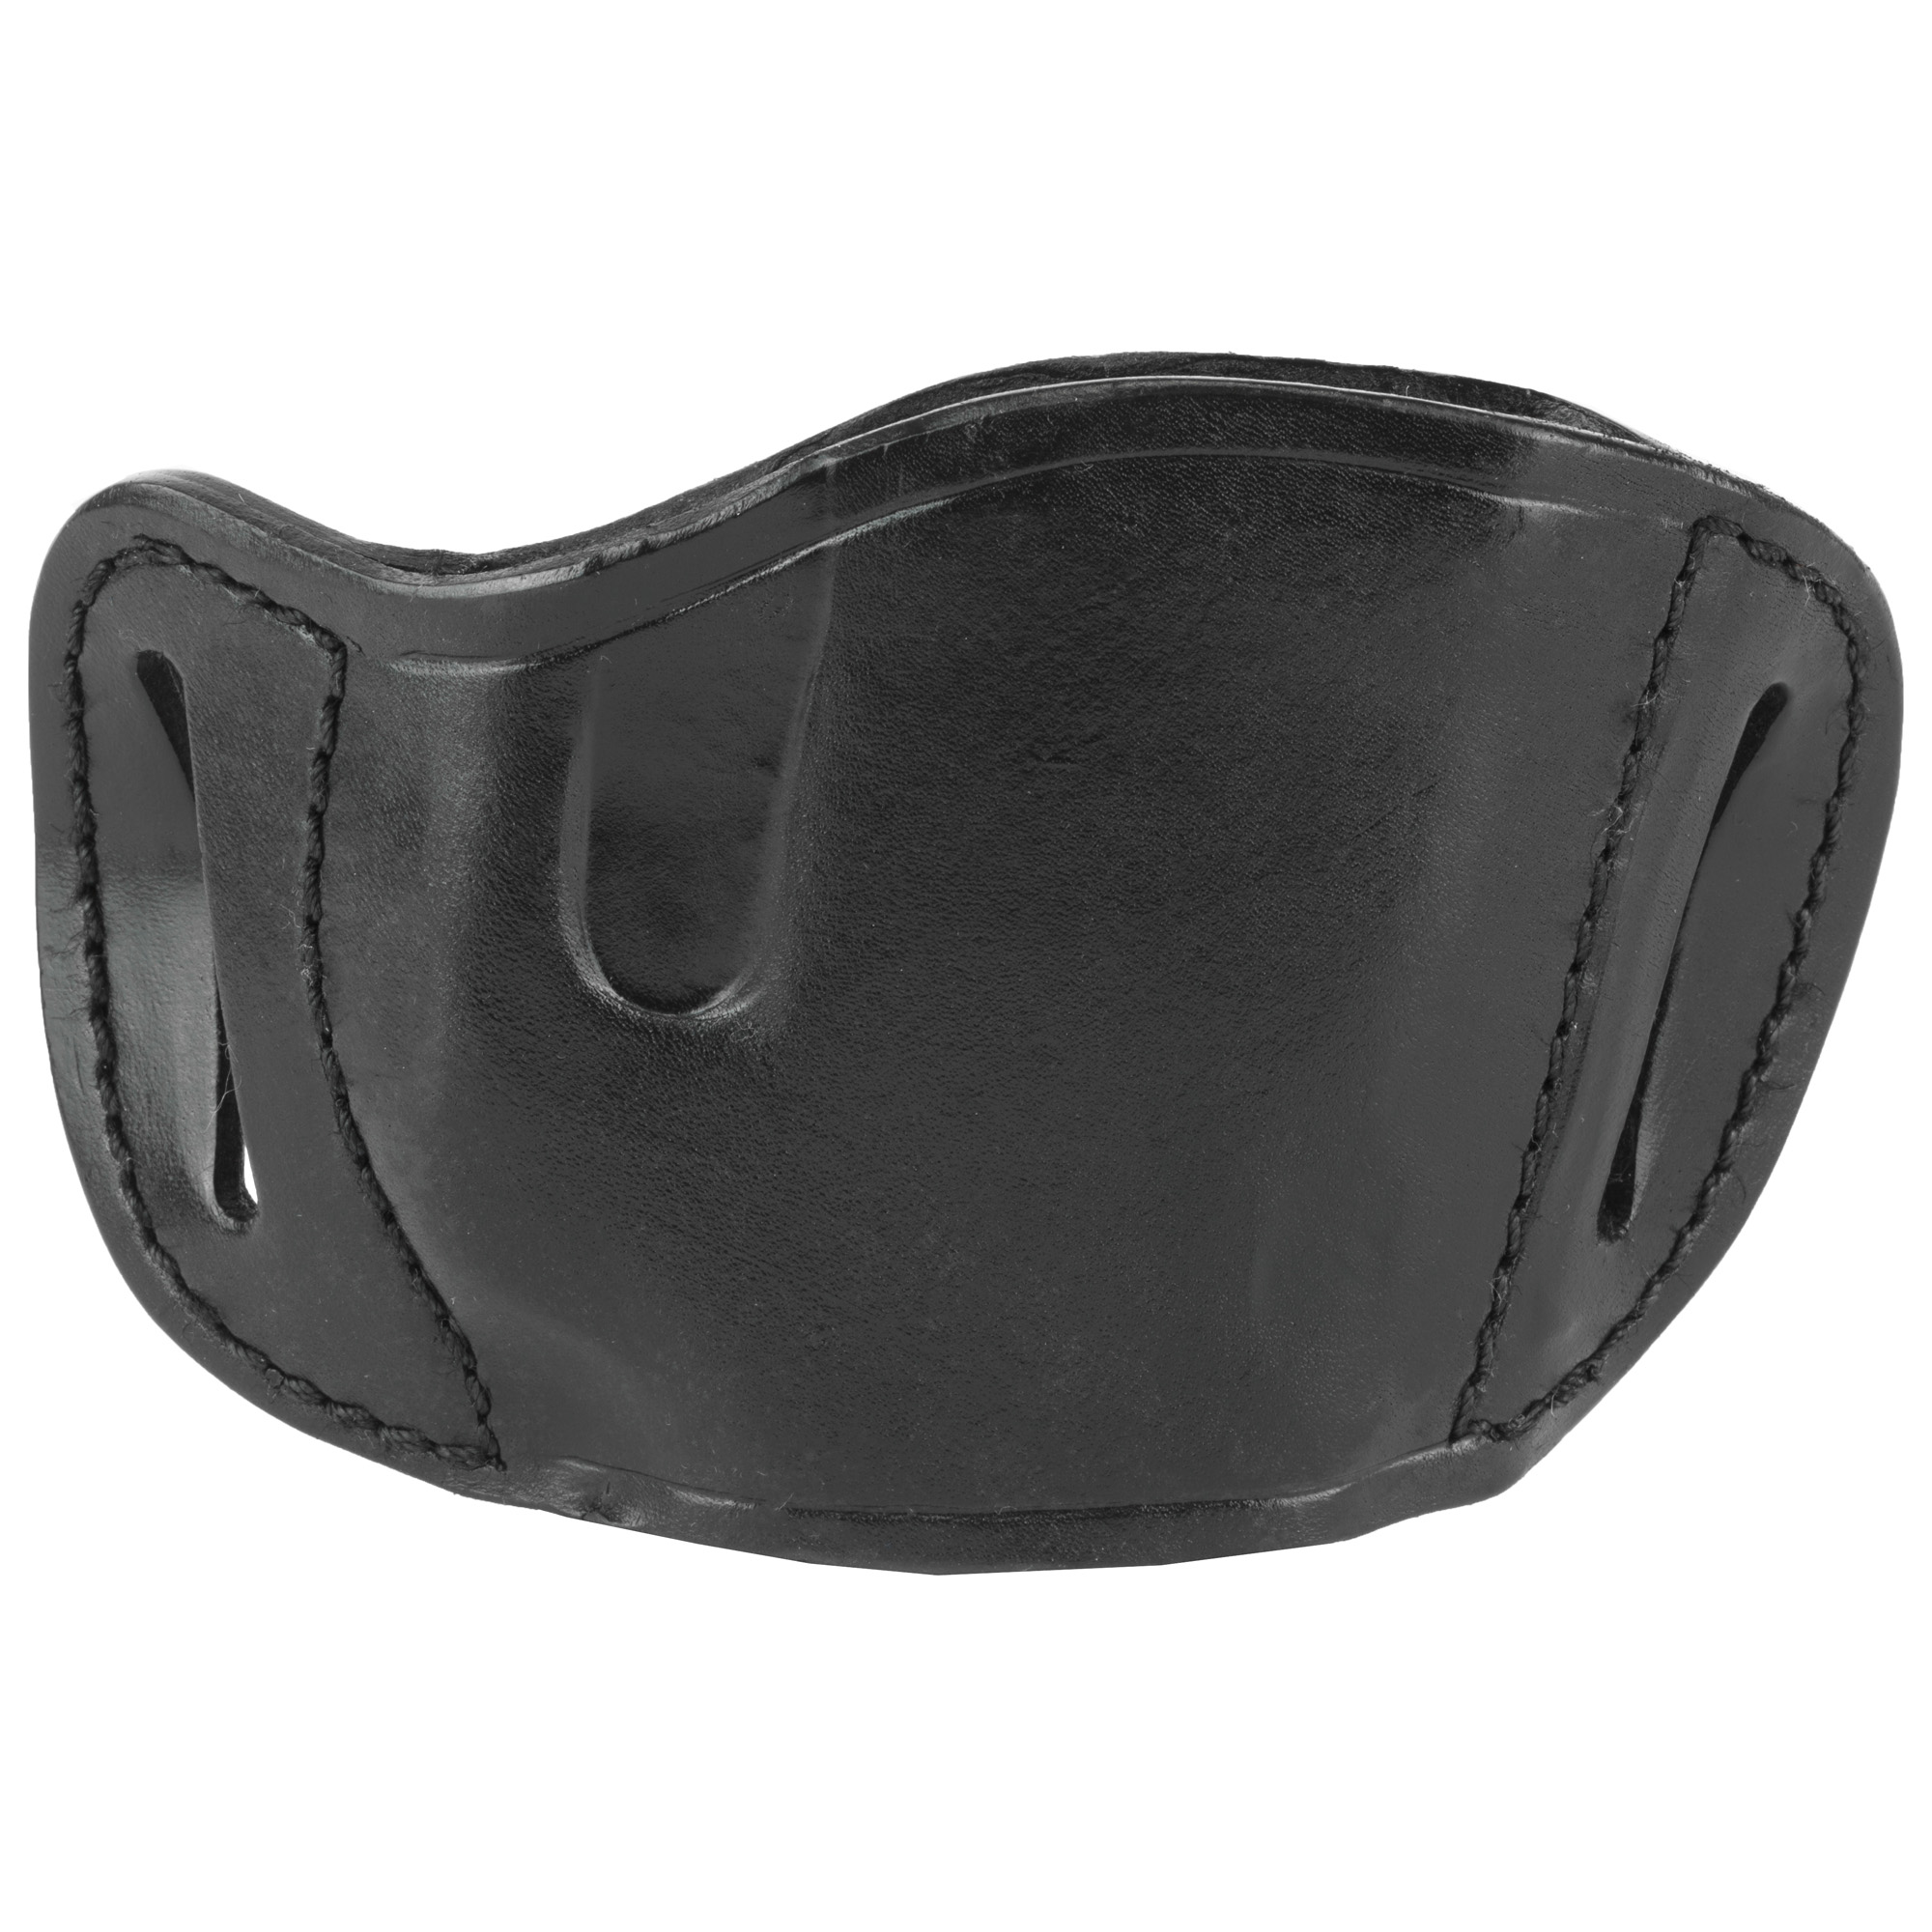 This molded leather belt slide holster of quality hand tooled and tanned leather provides a durable and attractive product.